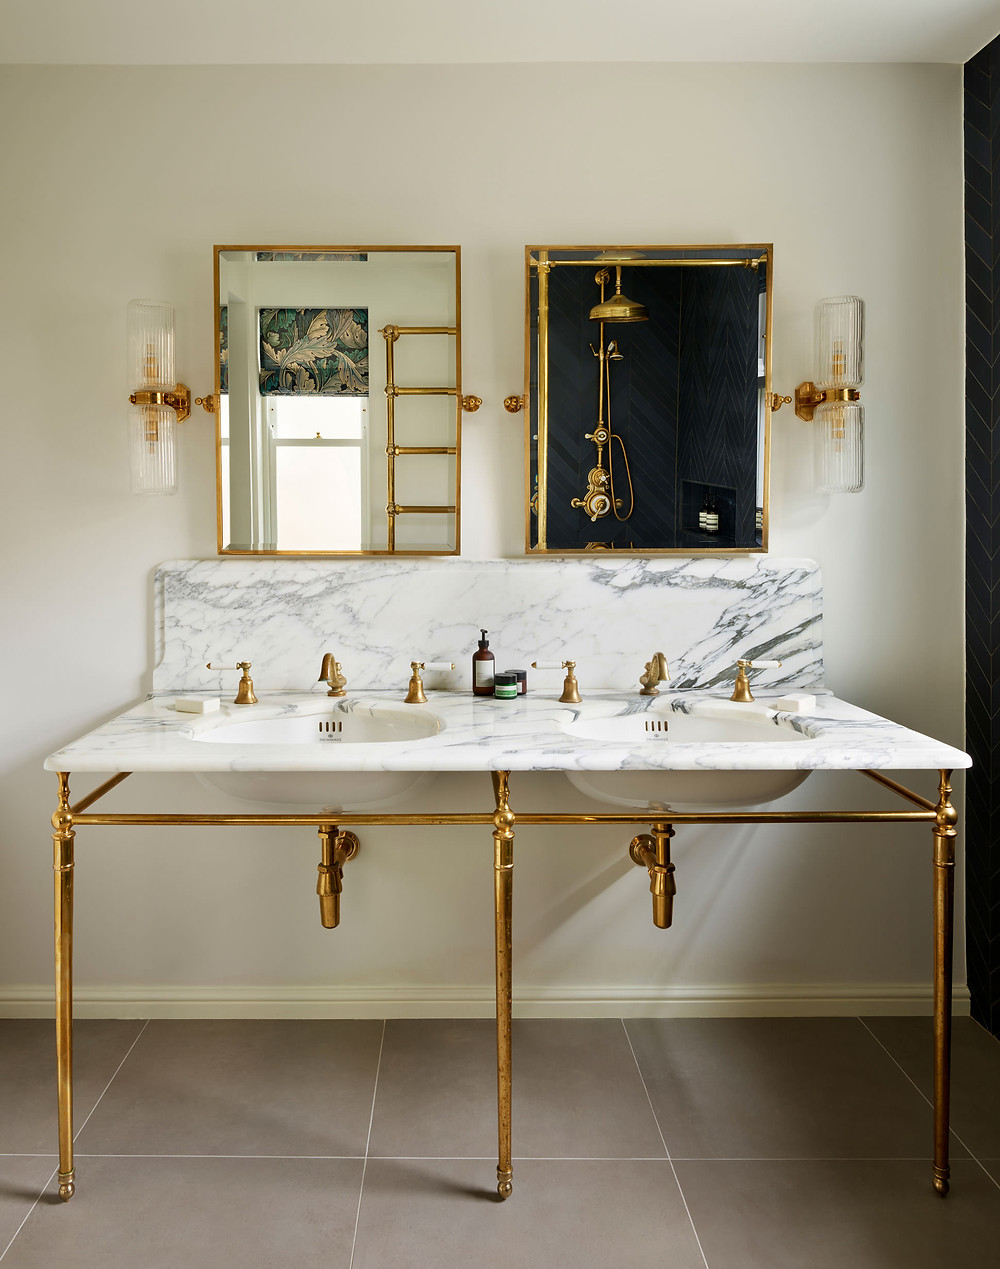 Luxury interiors, double marble vanity with large brass-framed tilt mirrors